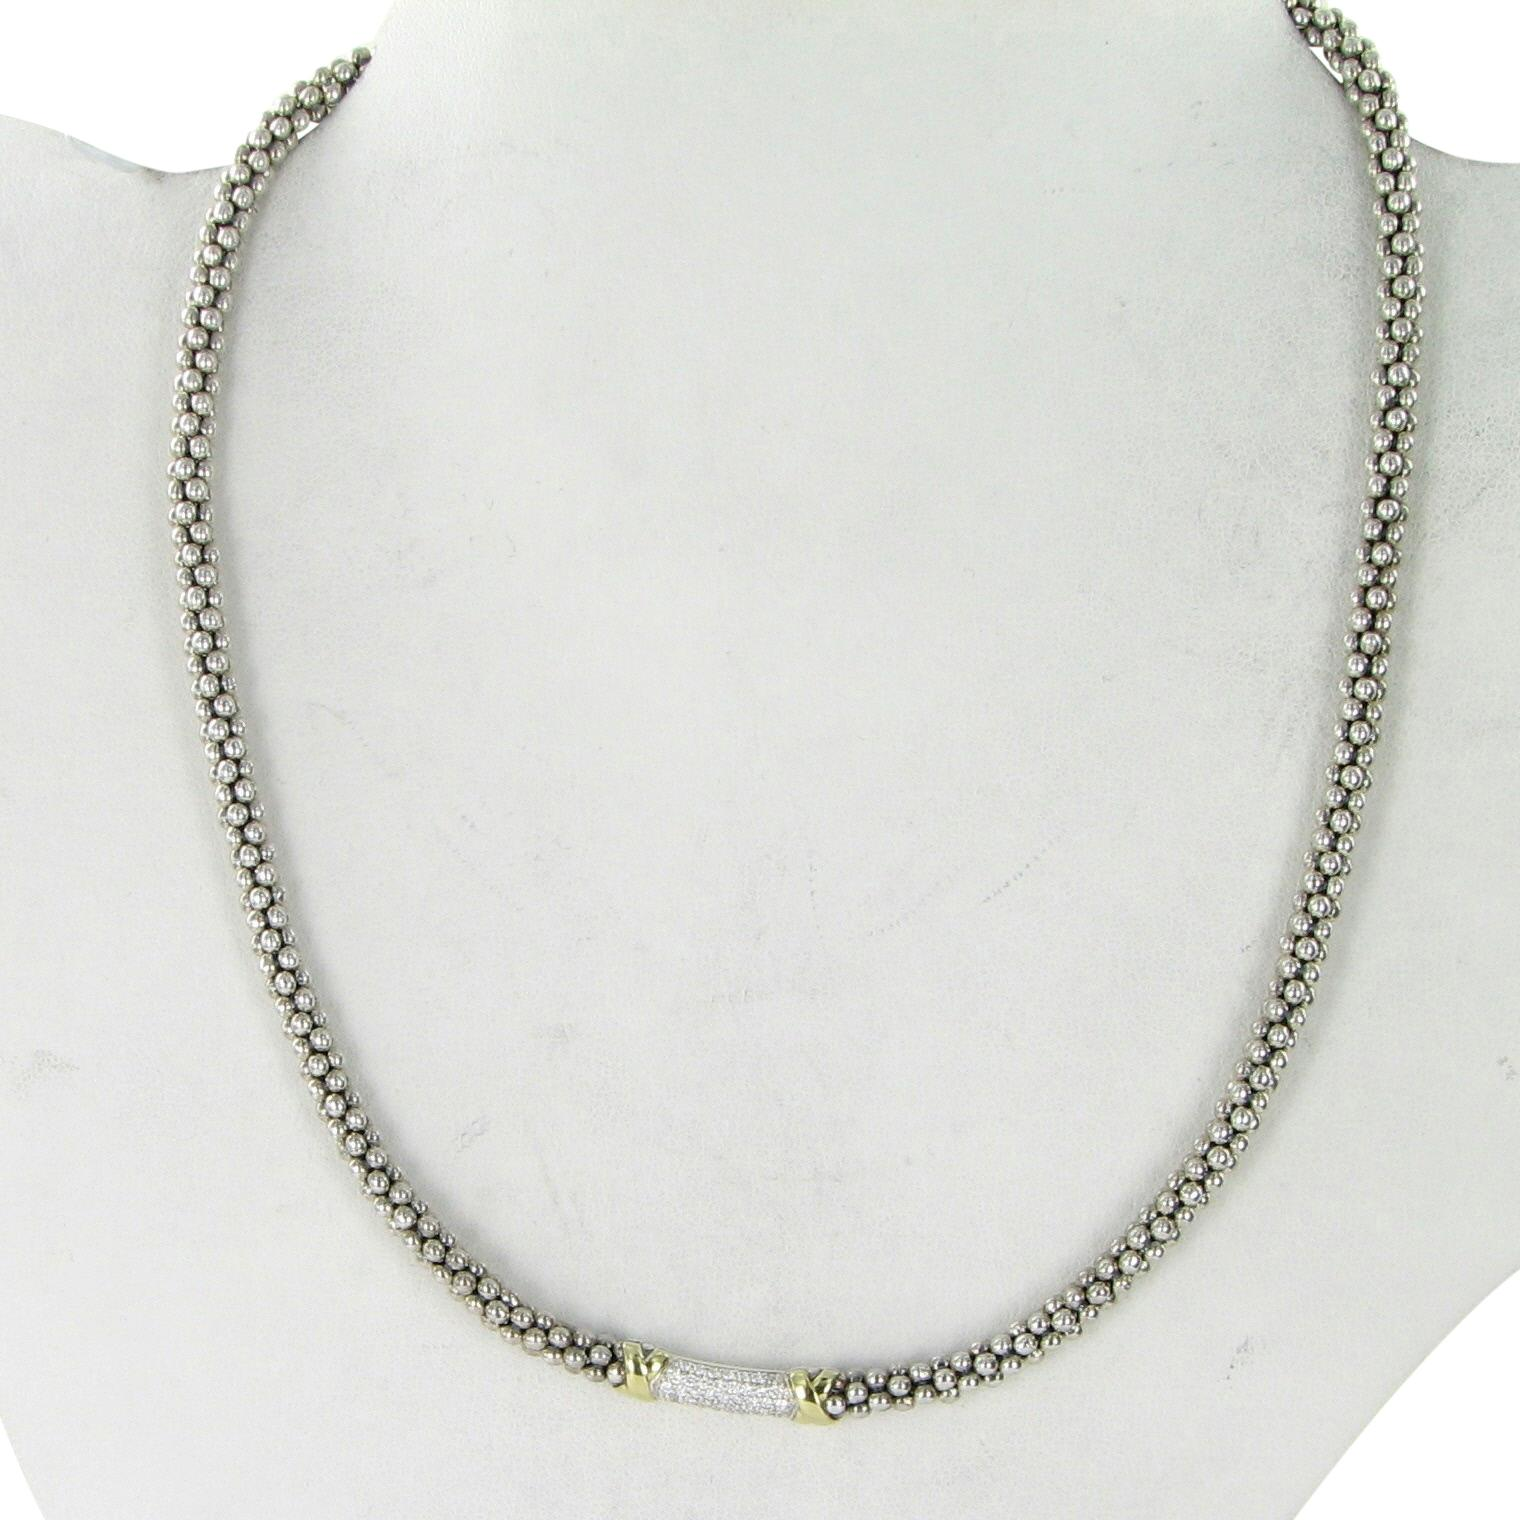 Lagos 4mm Sterling Silver Rope Necklace, 18L